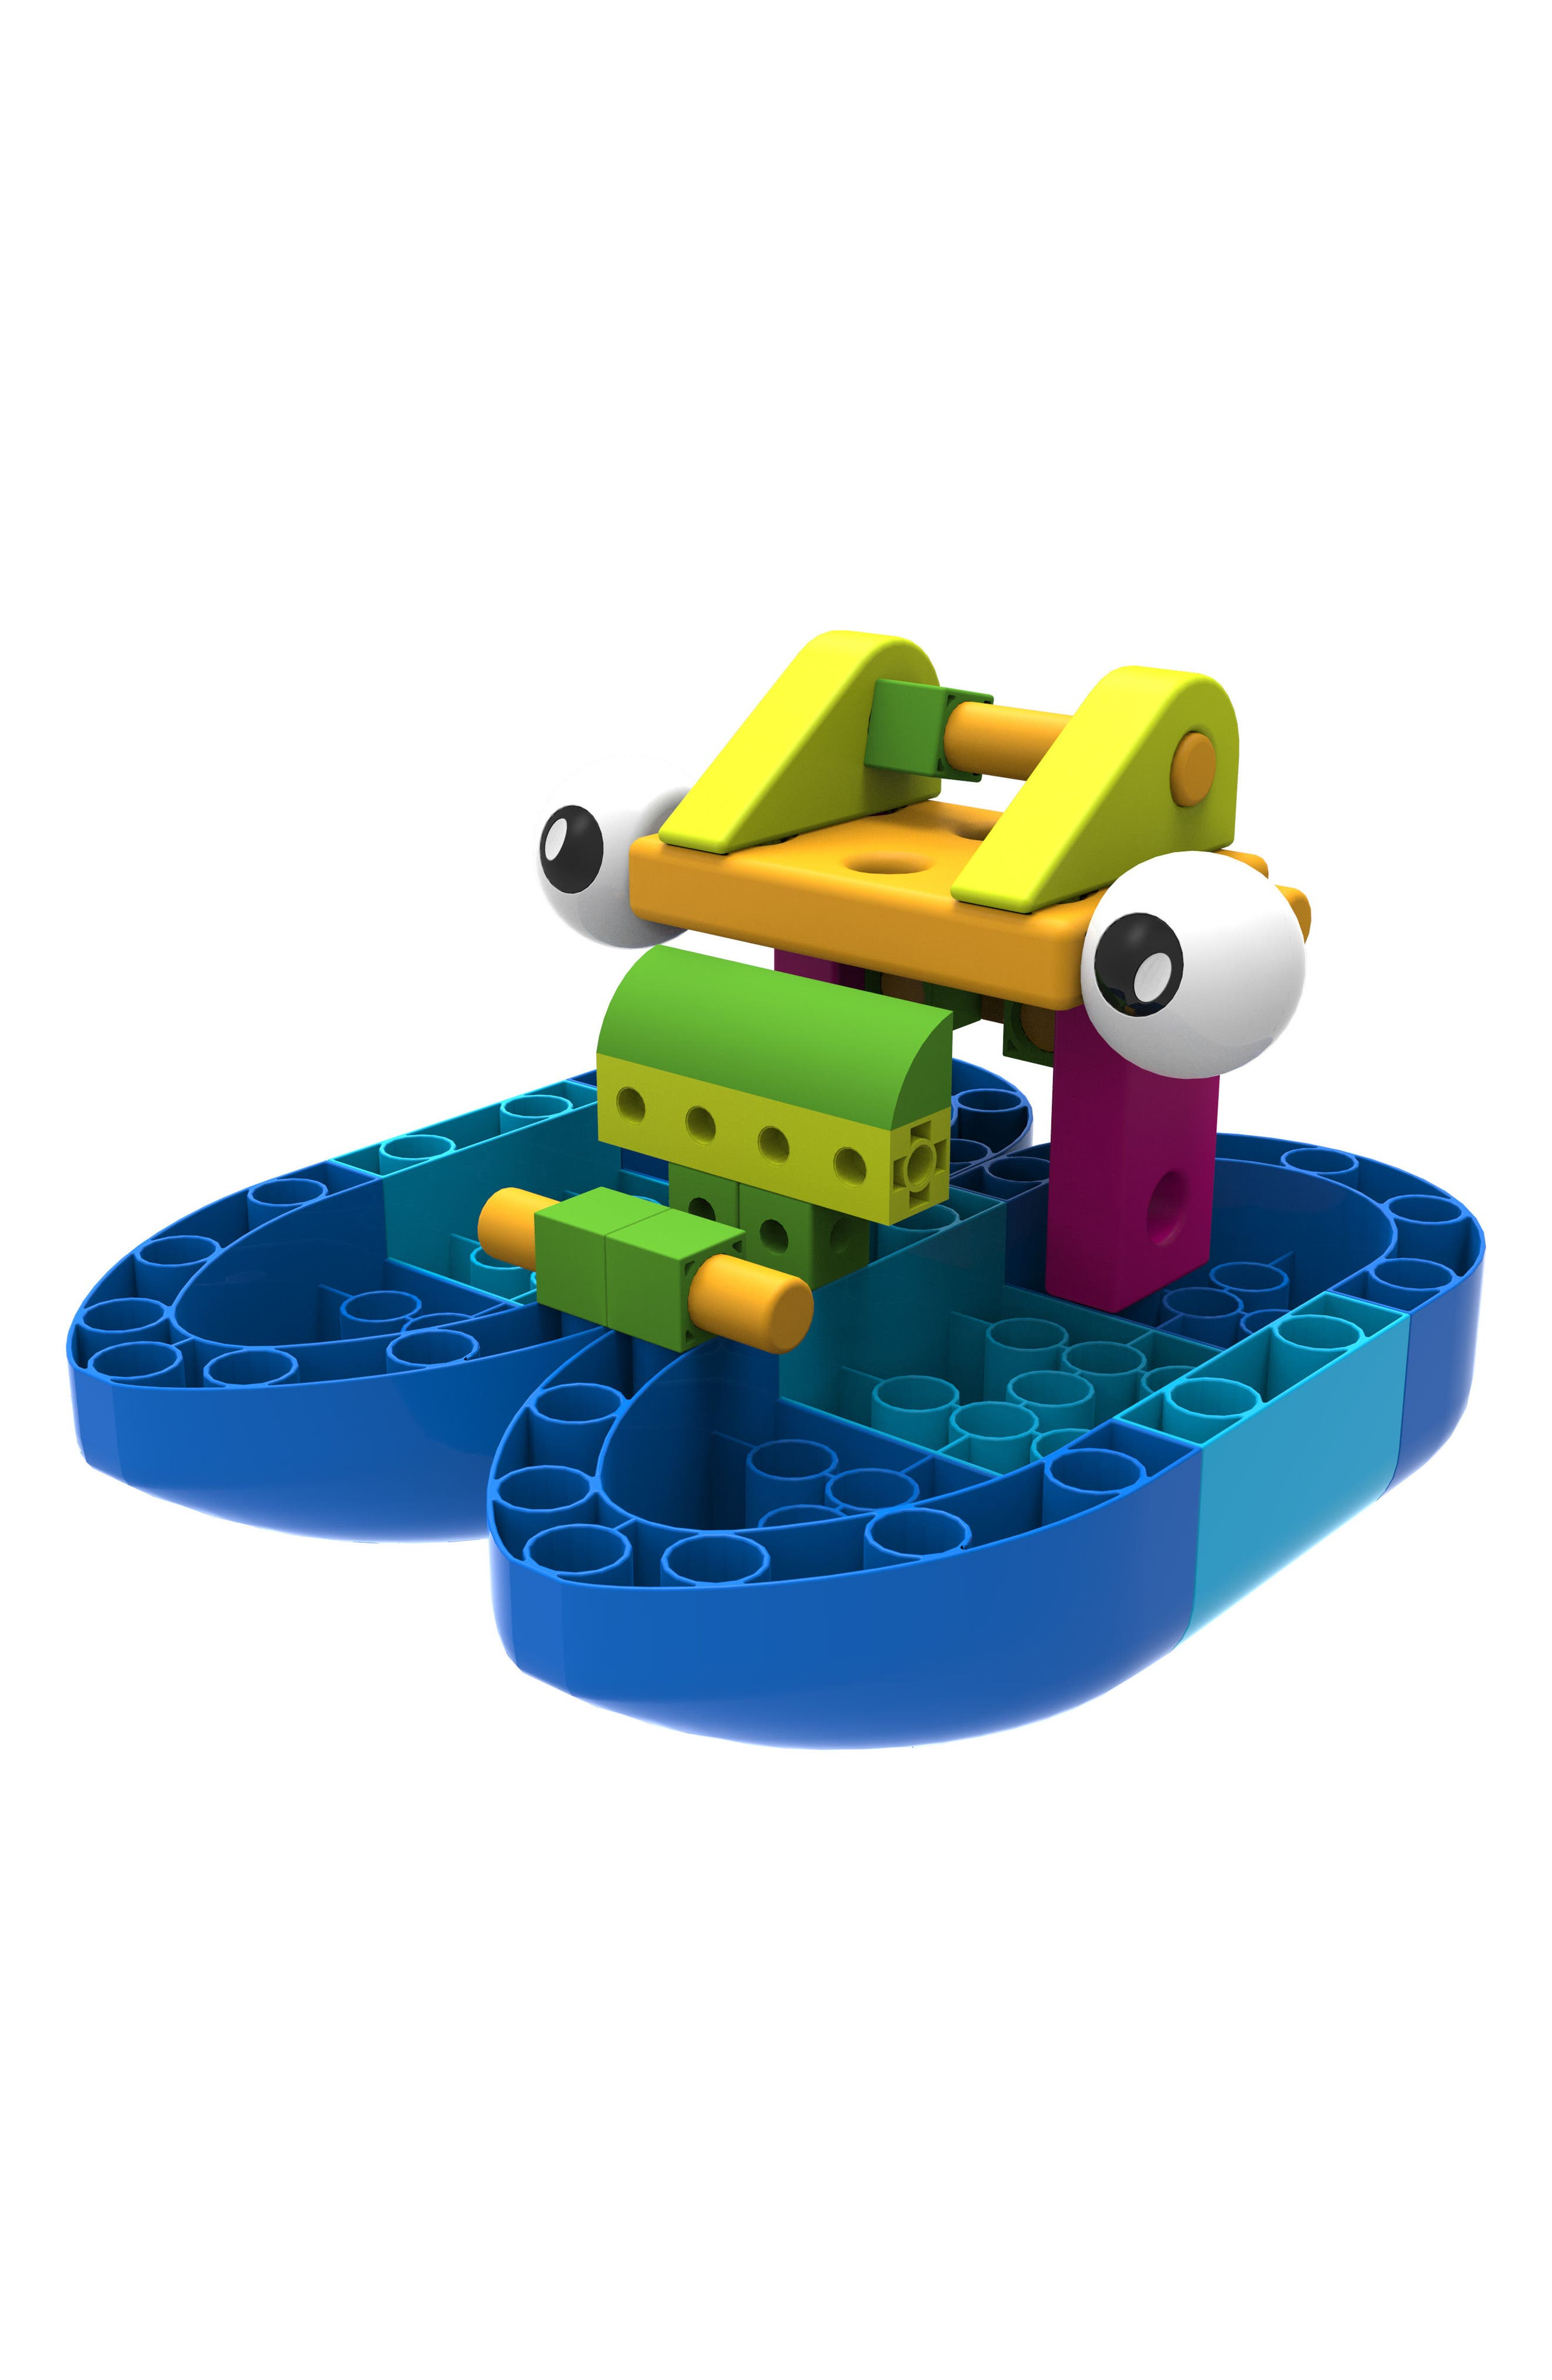 Boat Engineer Kit with Storybook,                             Alternate thumbnail 9, color,                             Multi